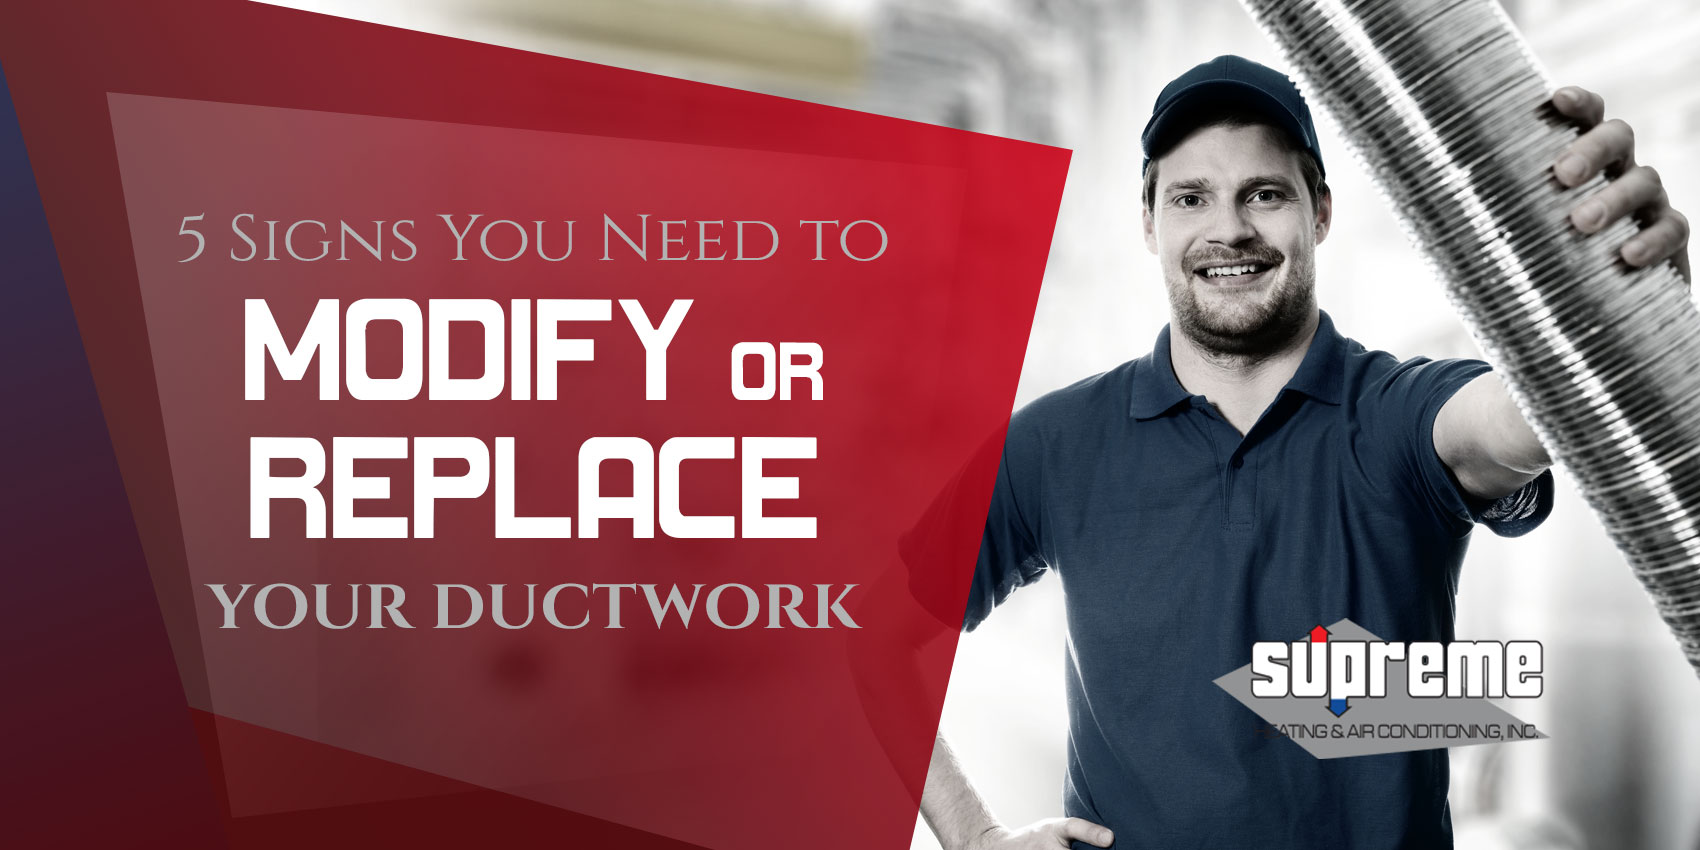 5 Signs You Need to Modify or Replace Your Ductwork